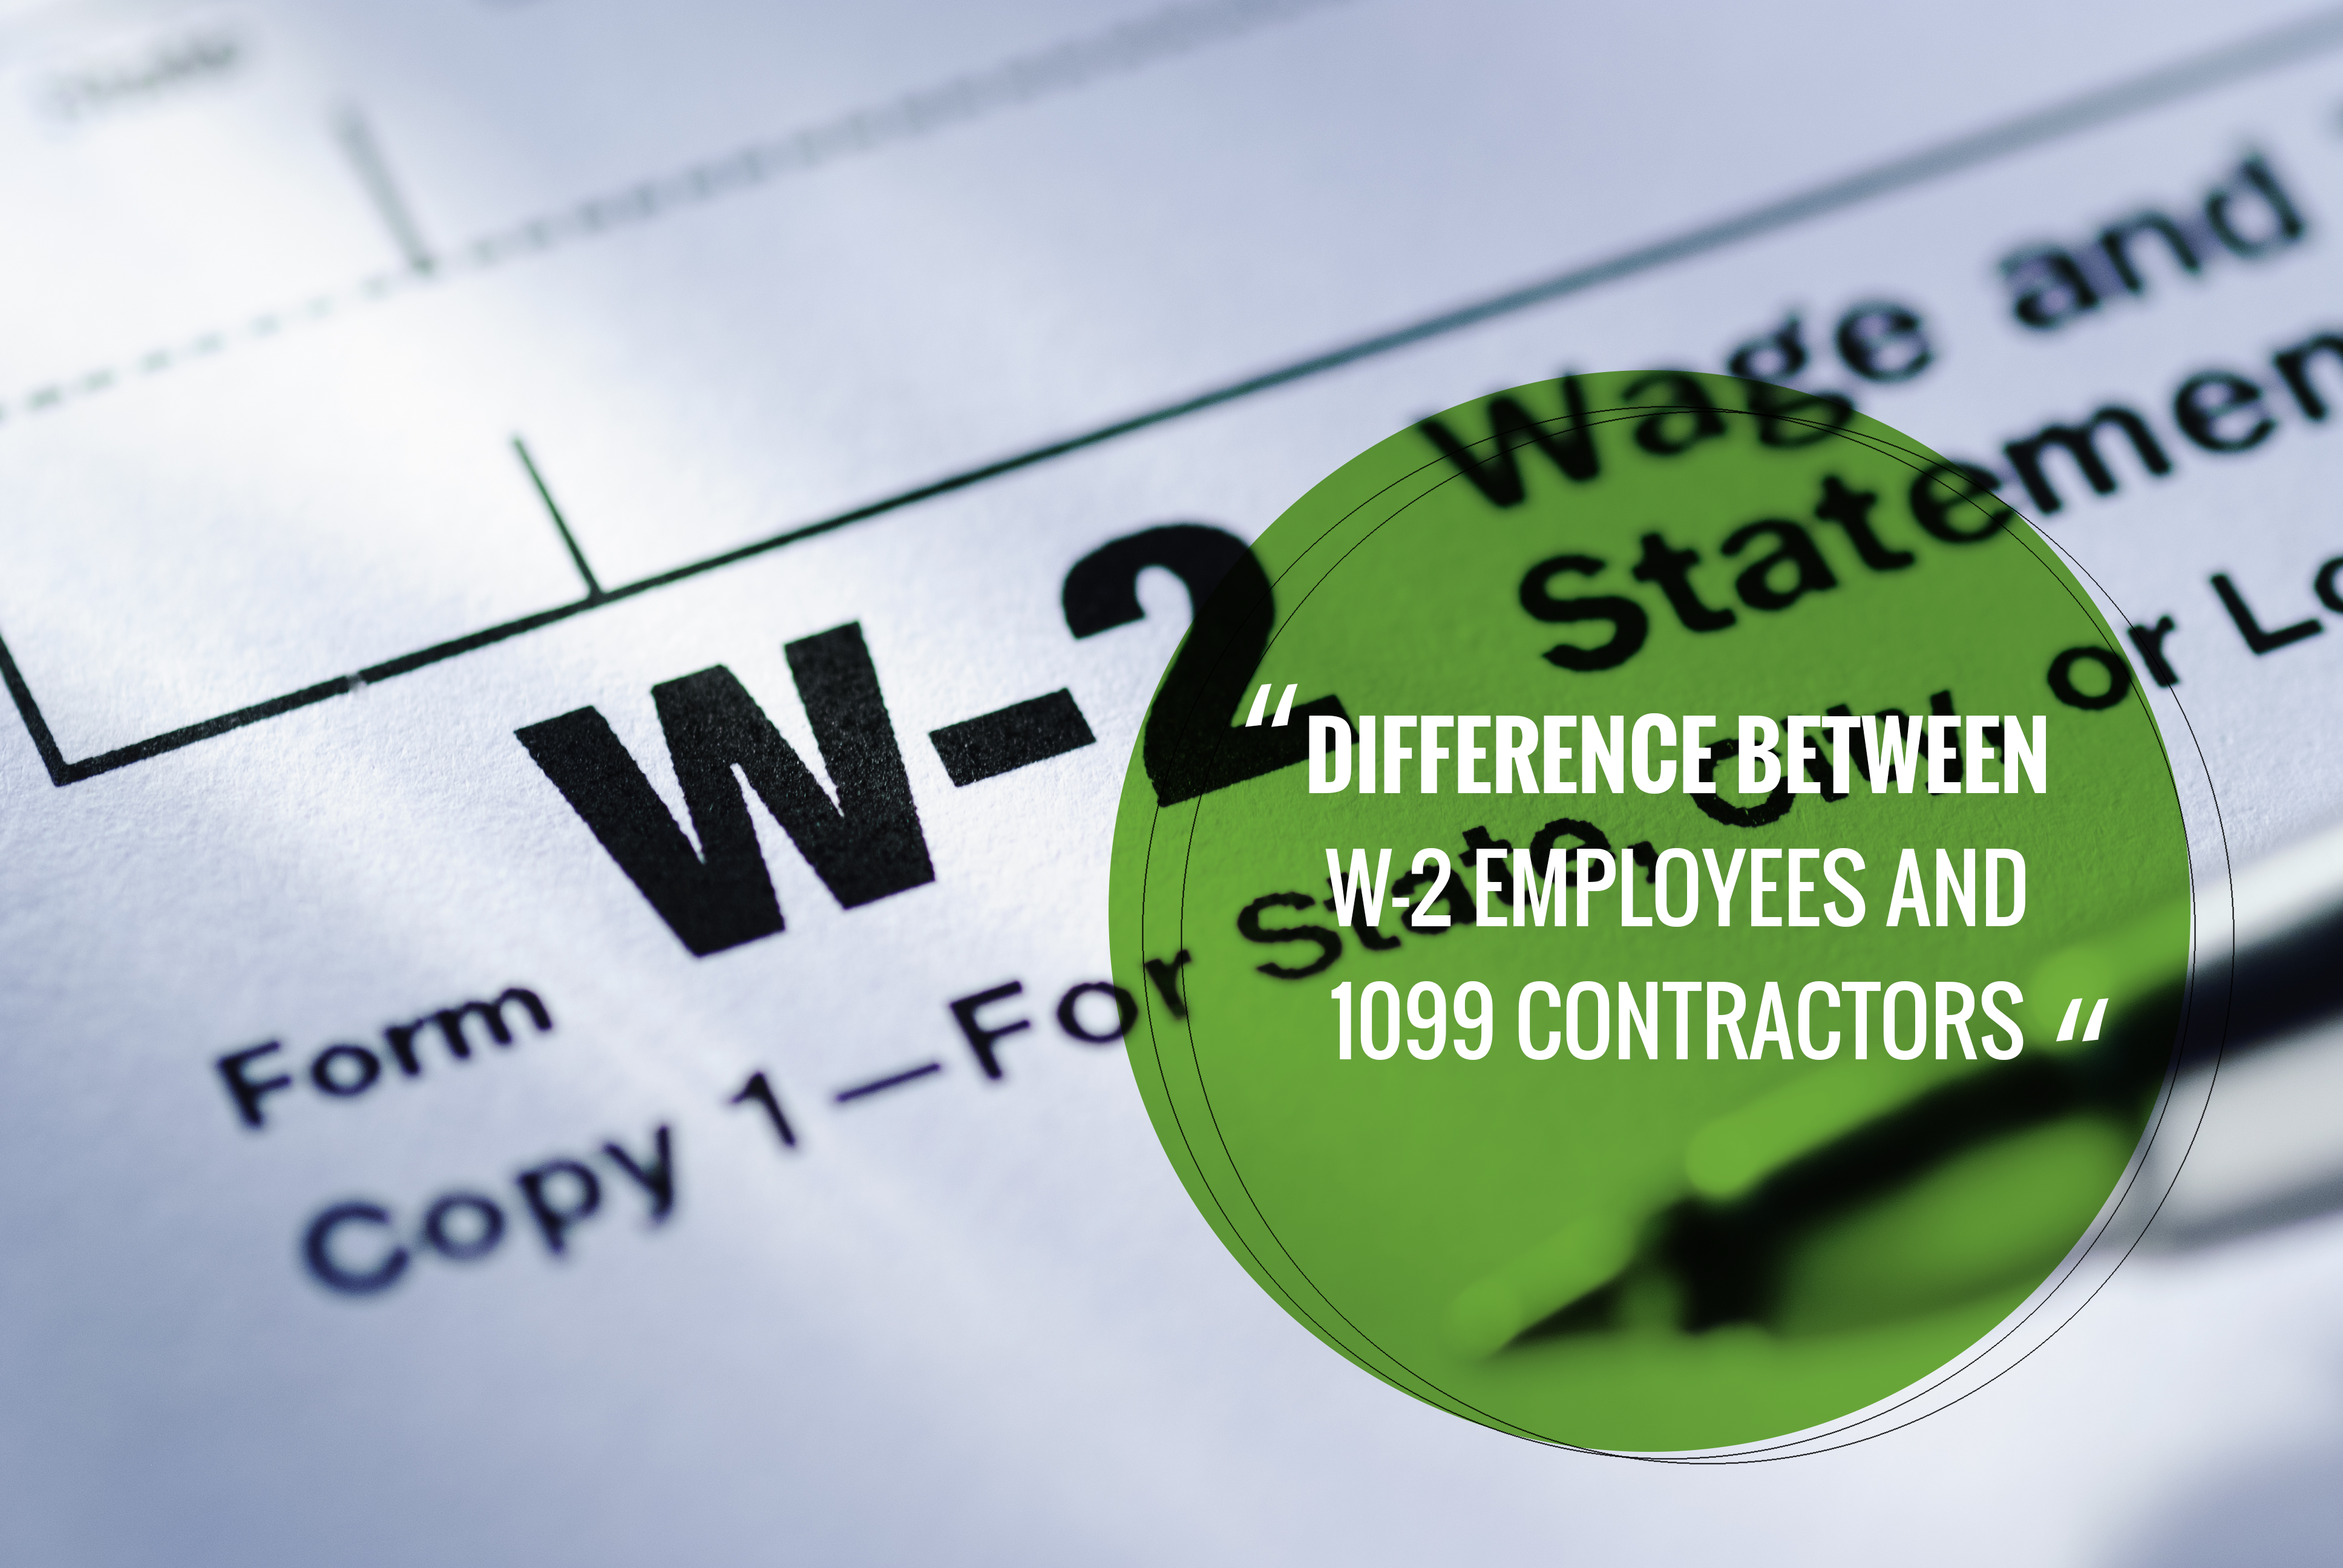 Difference Between W-2 Employees and 1099 Contractors